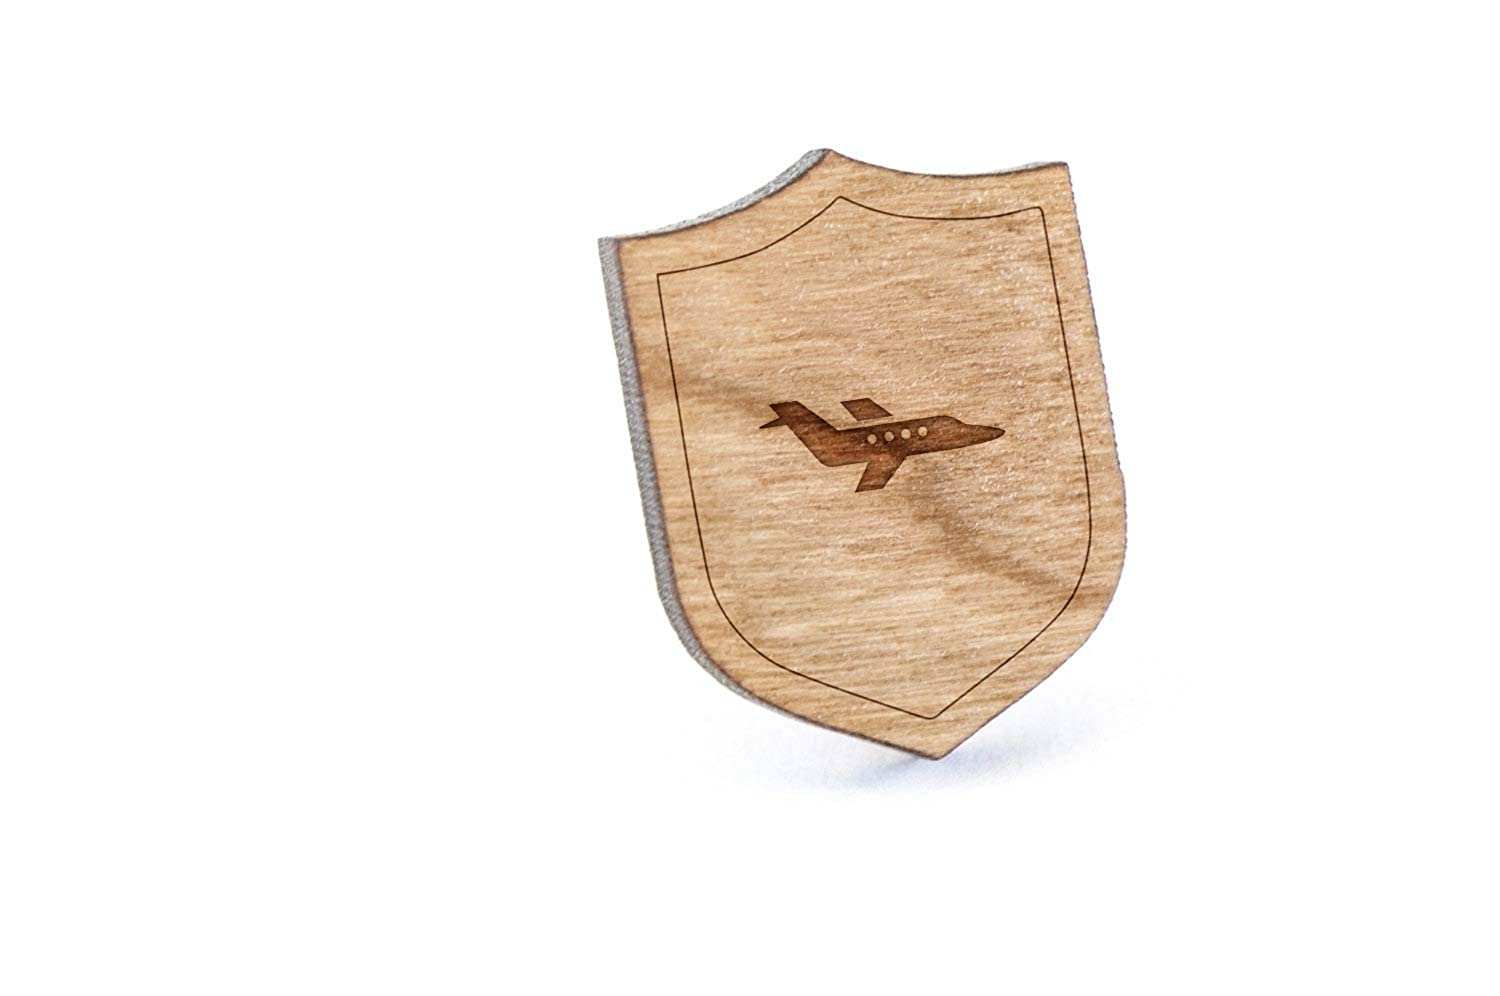 Private Airplane Lapel Pin, Wooden Pin And Tie Tack | Rustic And Minimalistic Groomsmen Gifts And Wedding Accessories